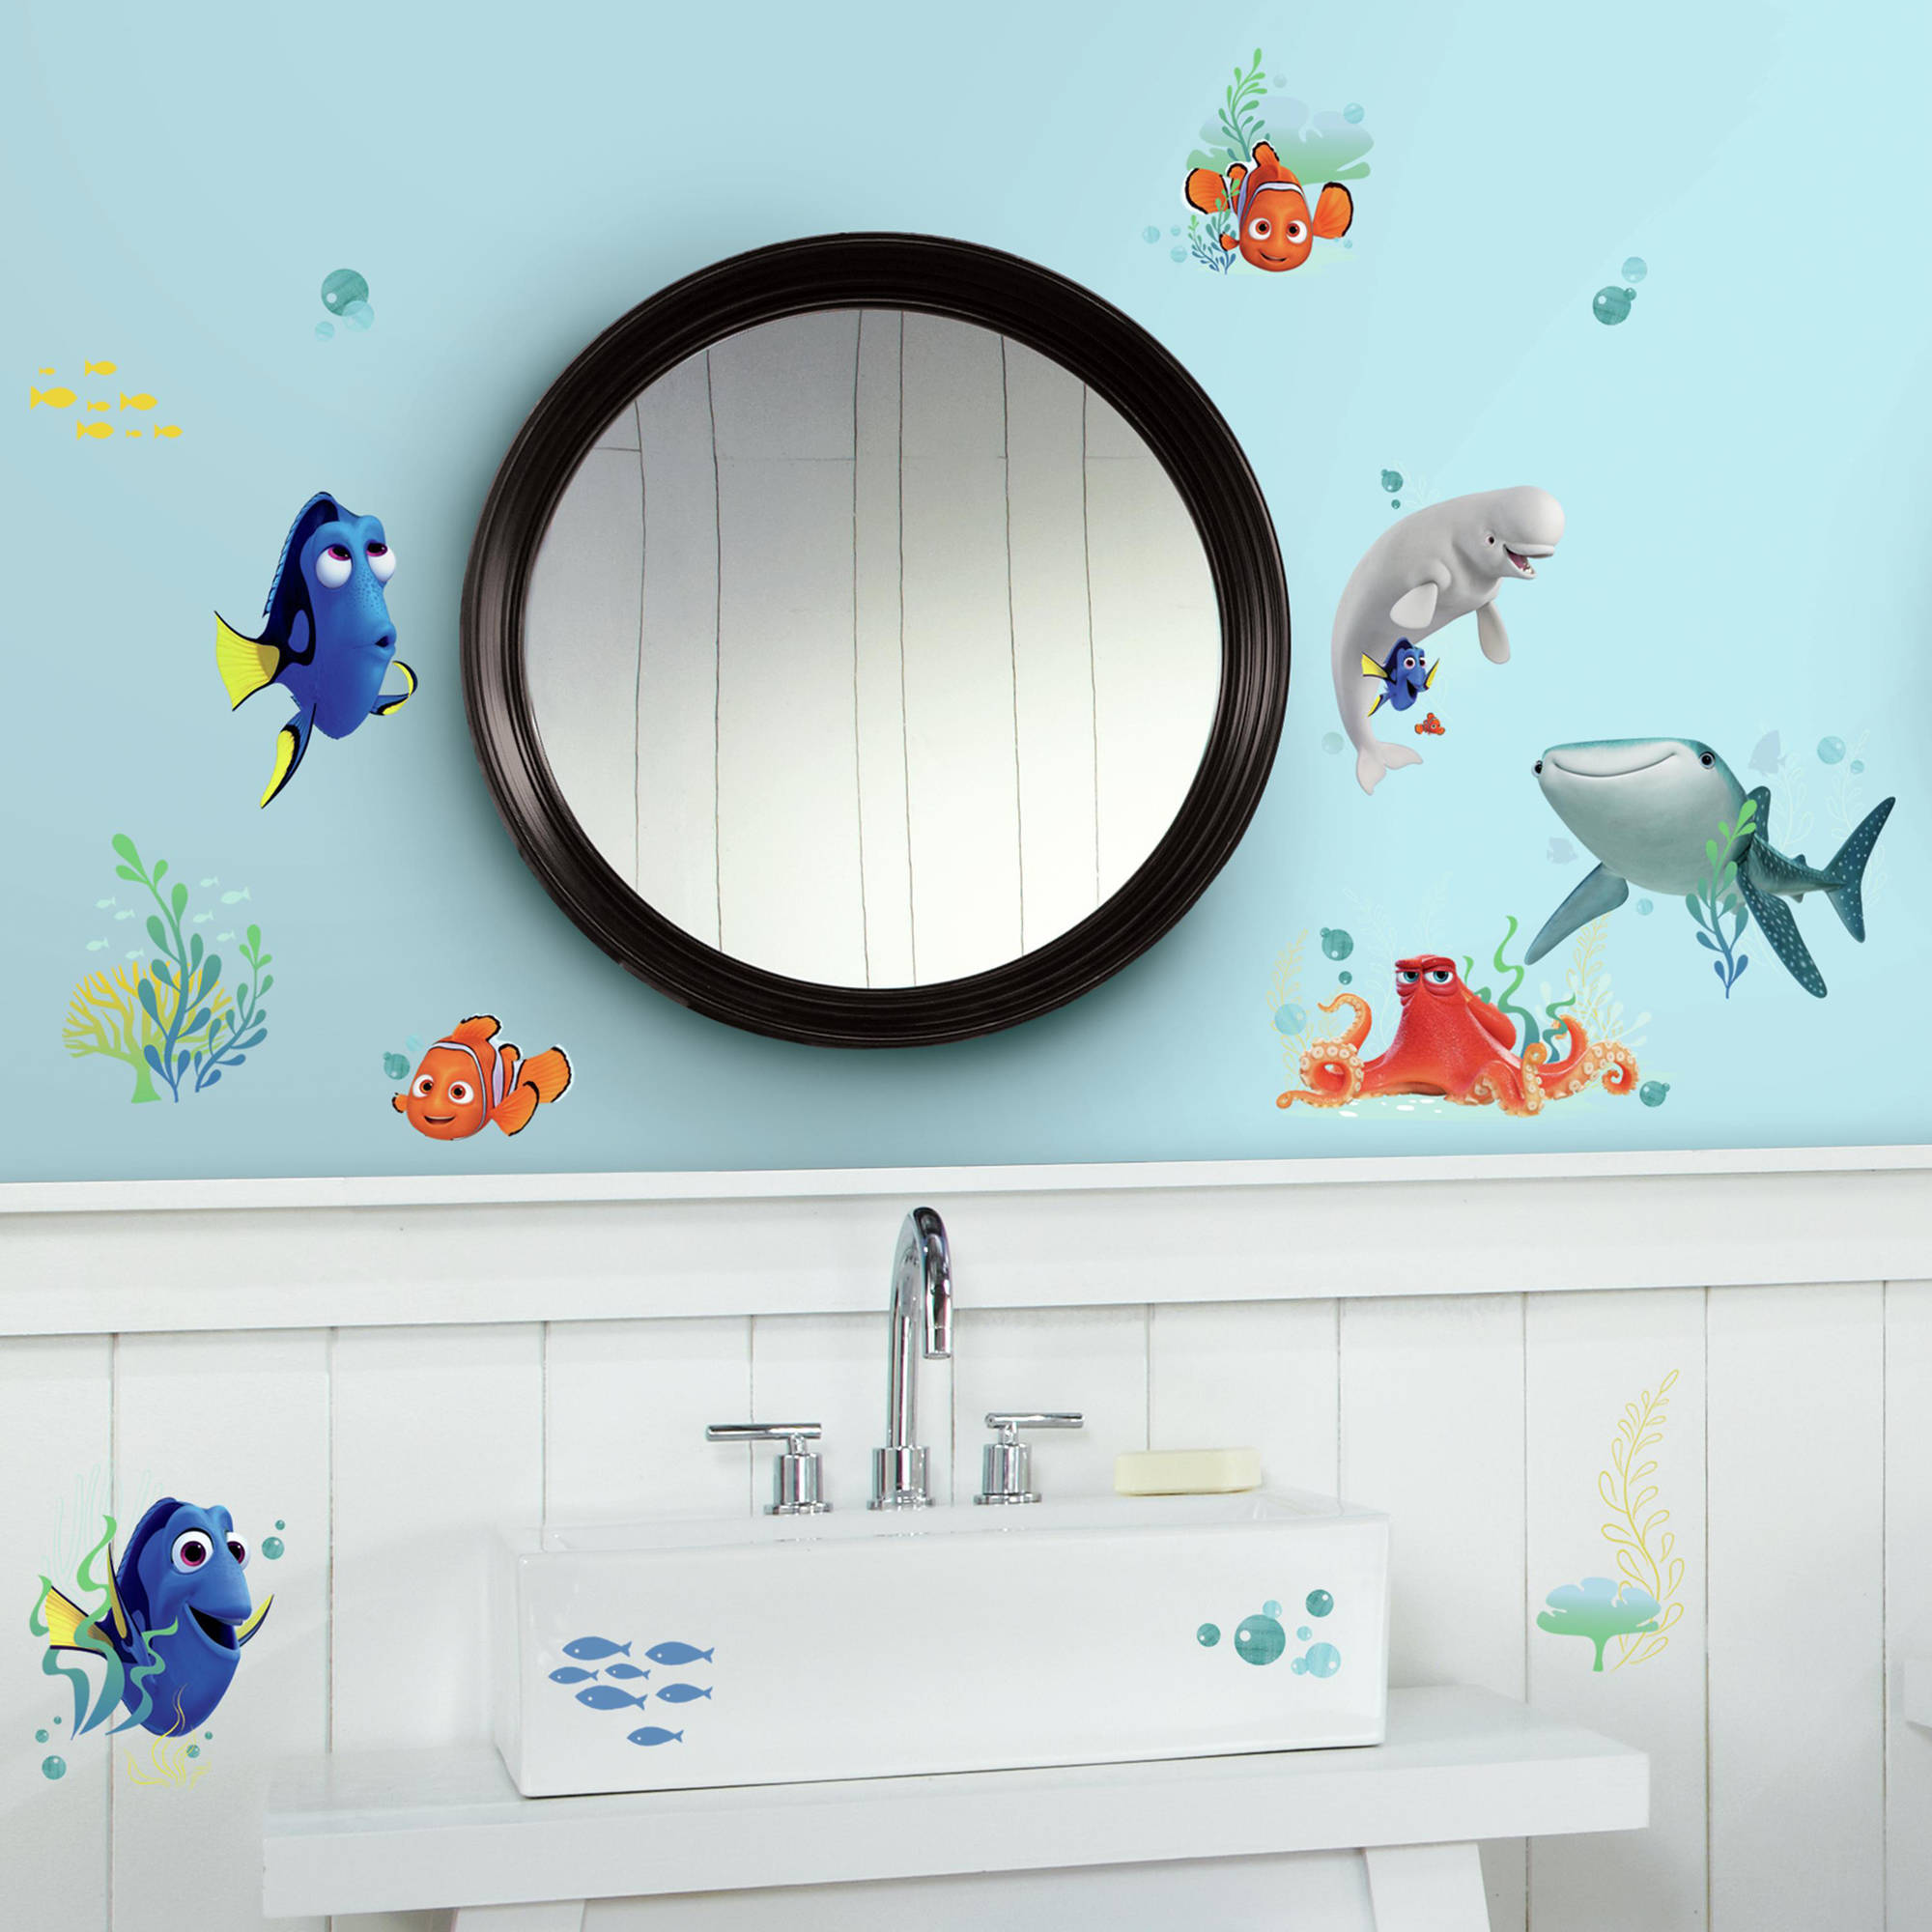 Wall Sticker Bathroom Roommates Finding Dory Peel And Stick Wall Decals Walmartcom